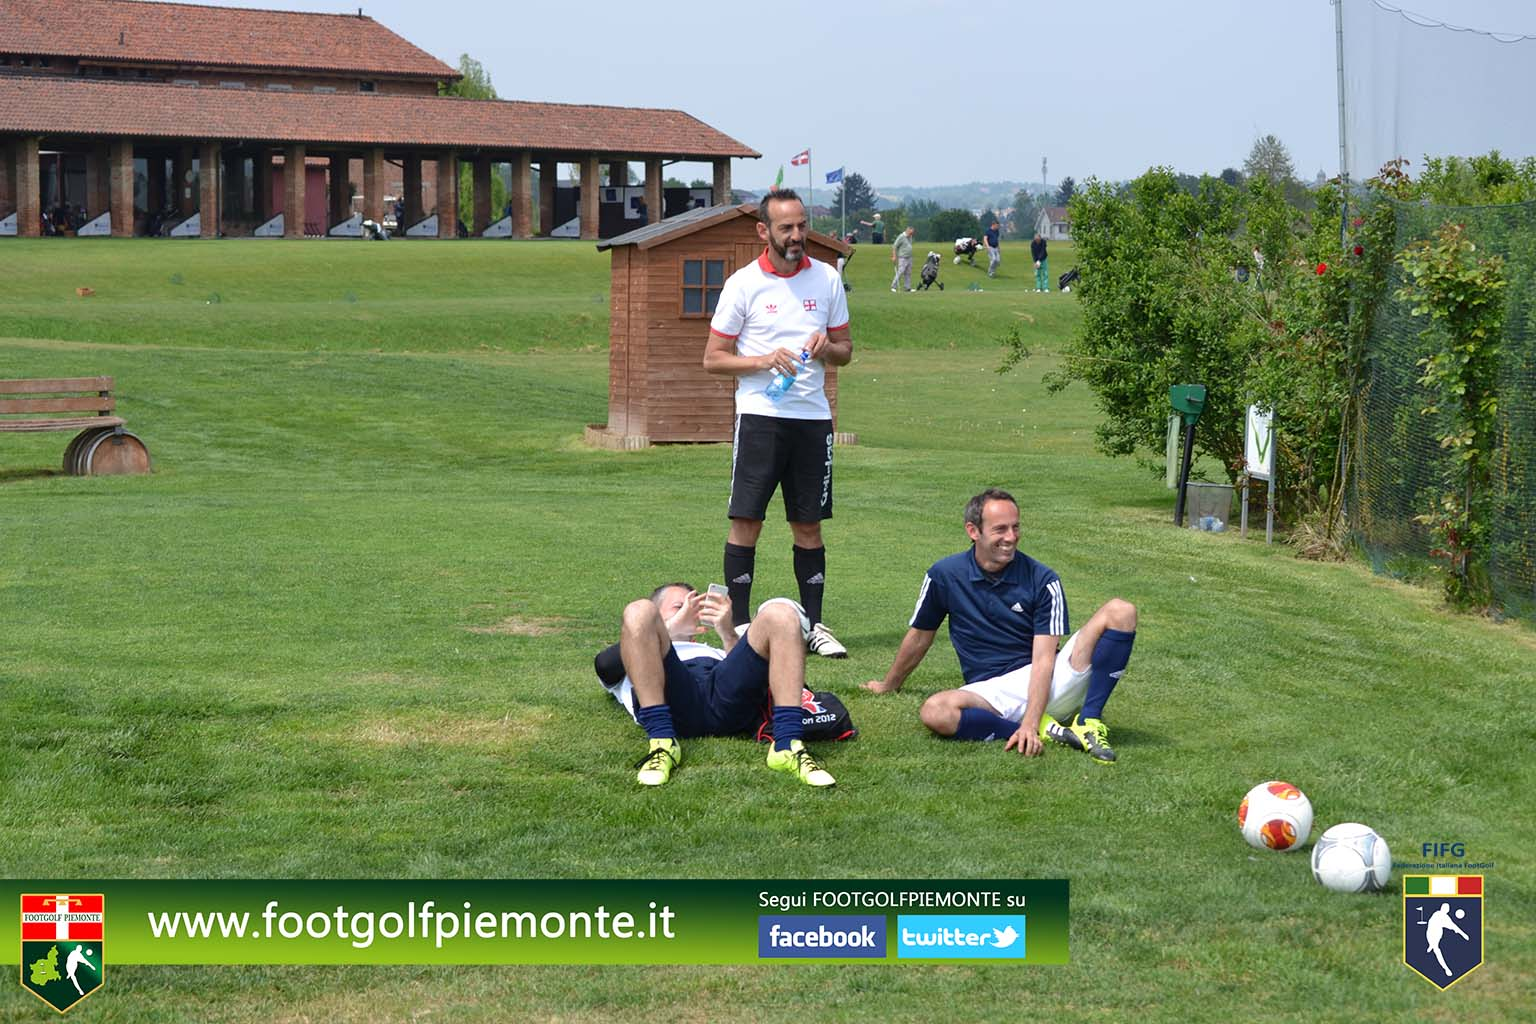 FOTO 9 Regions' Cup Footgolf Piemonte 2016 Golf Città di Asti (At) 30apr16-89